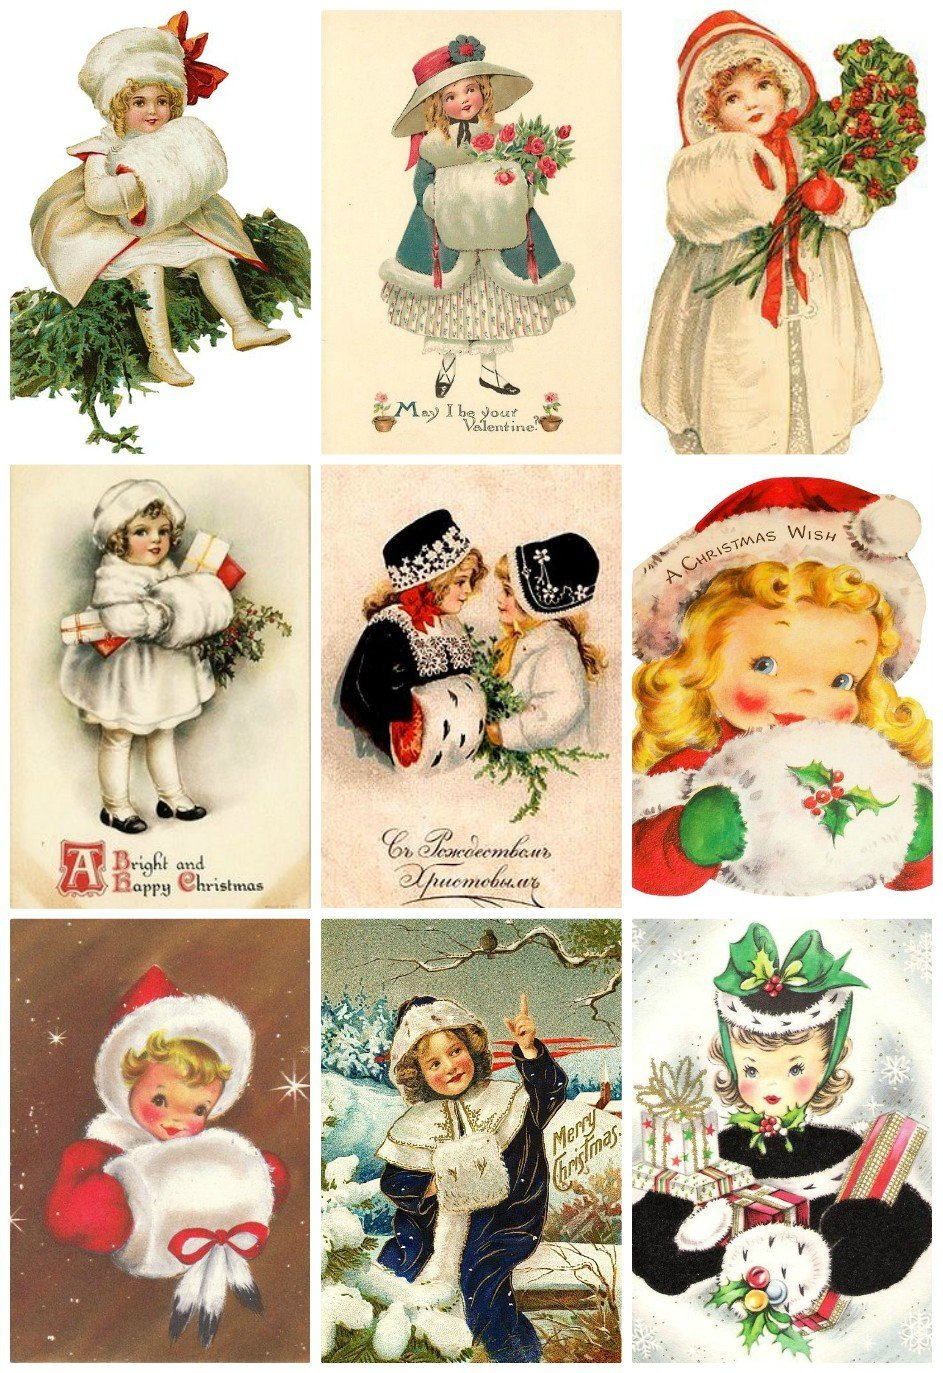 Victorian Vintage Winter Children with Muffs Christmas Cards #101 Printed Collage Sheet 8.5 x 11 Paper Moon Media